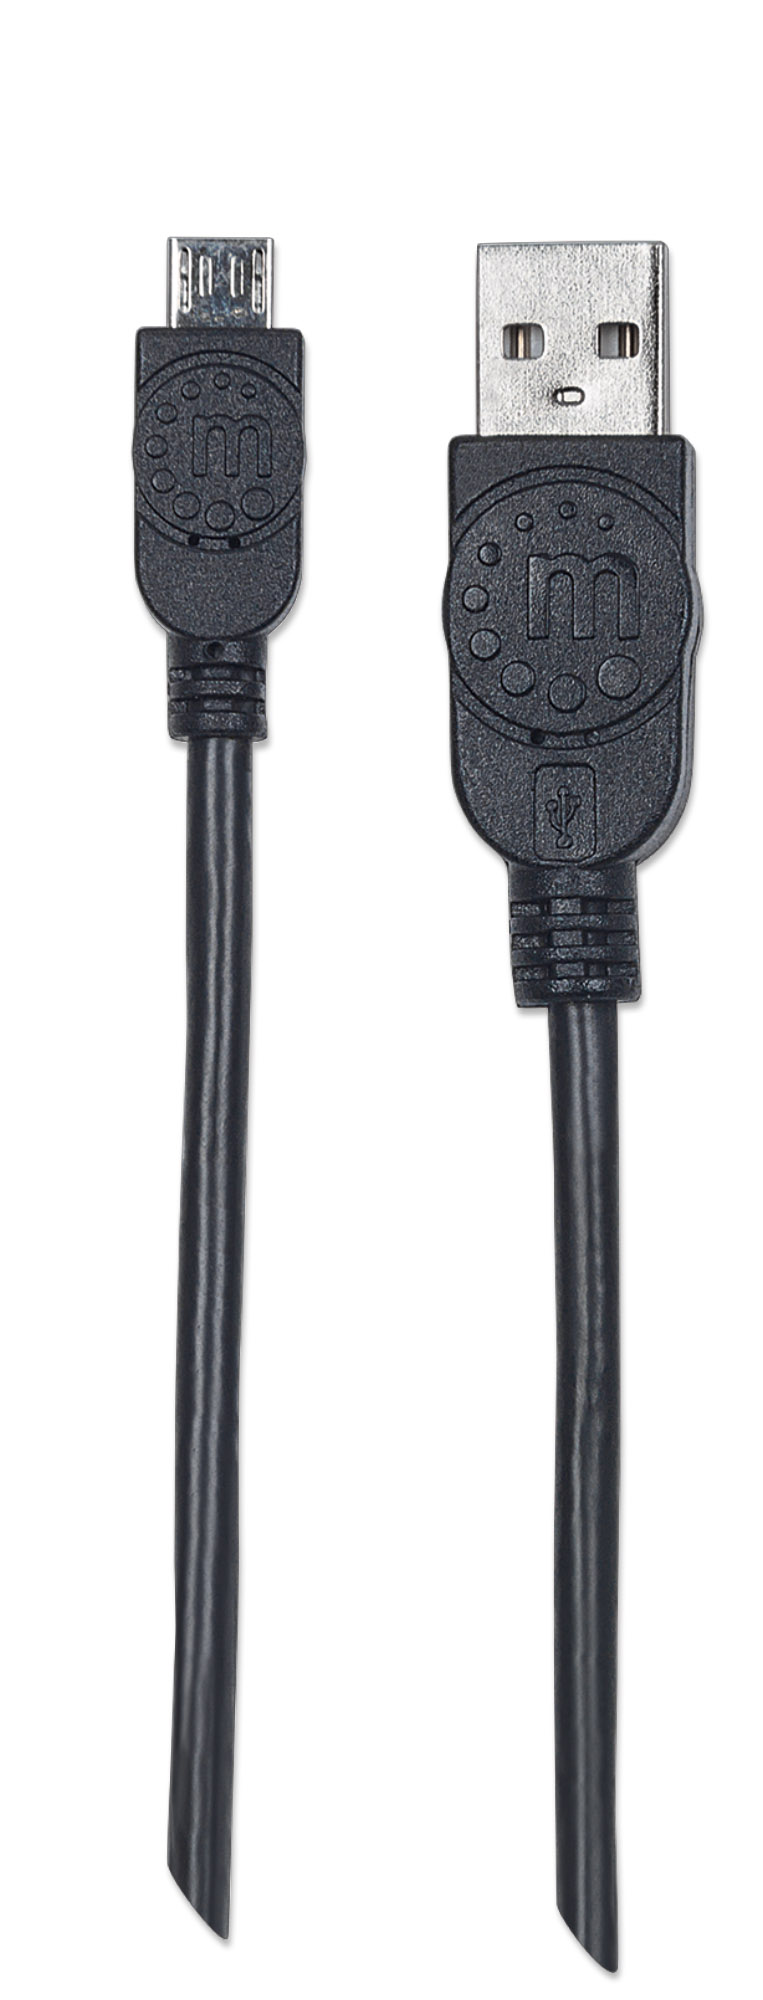 Hi-Speed USB Micro-B Device Cable